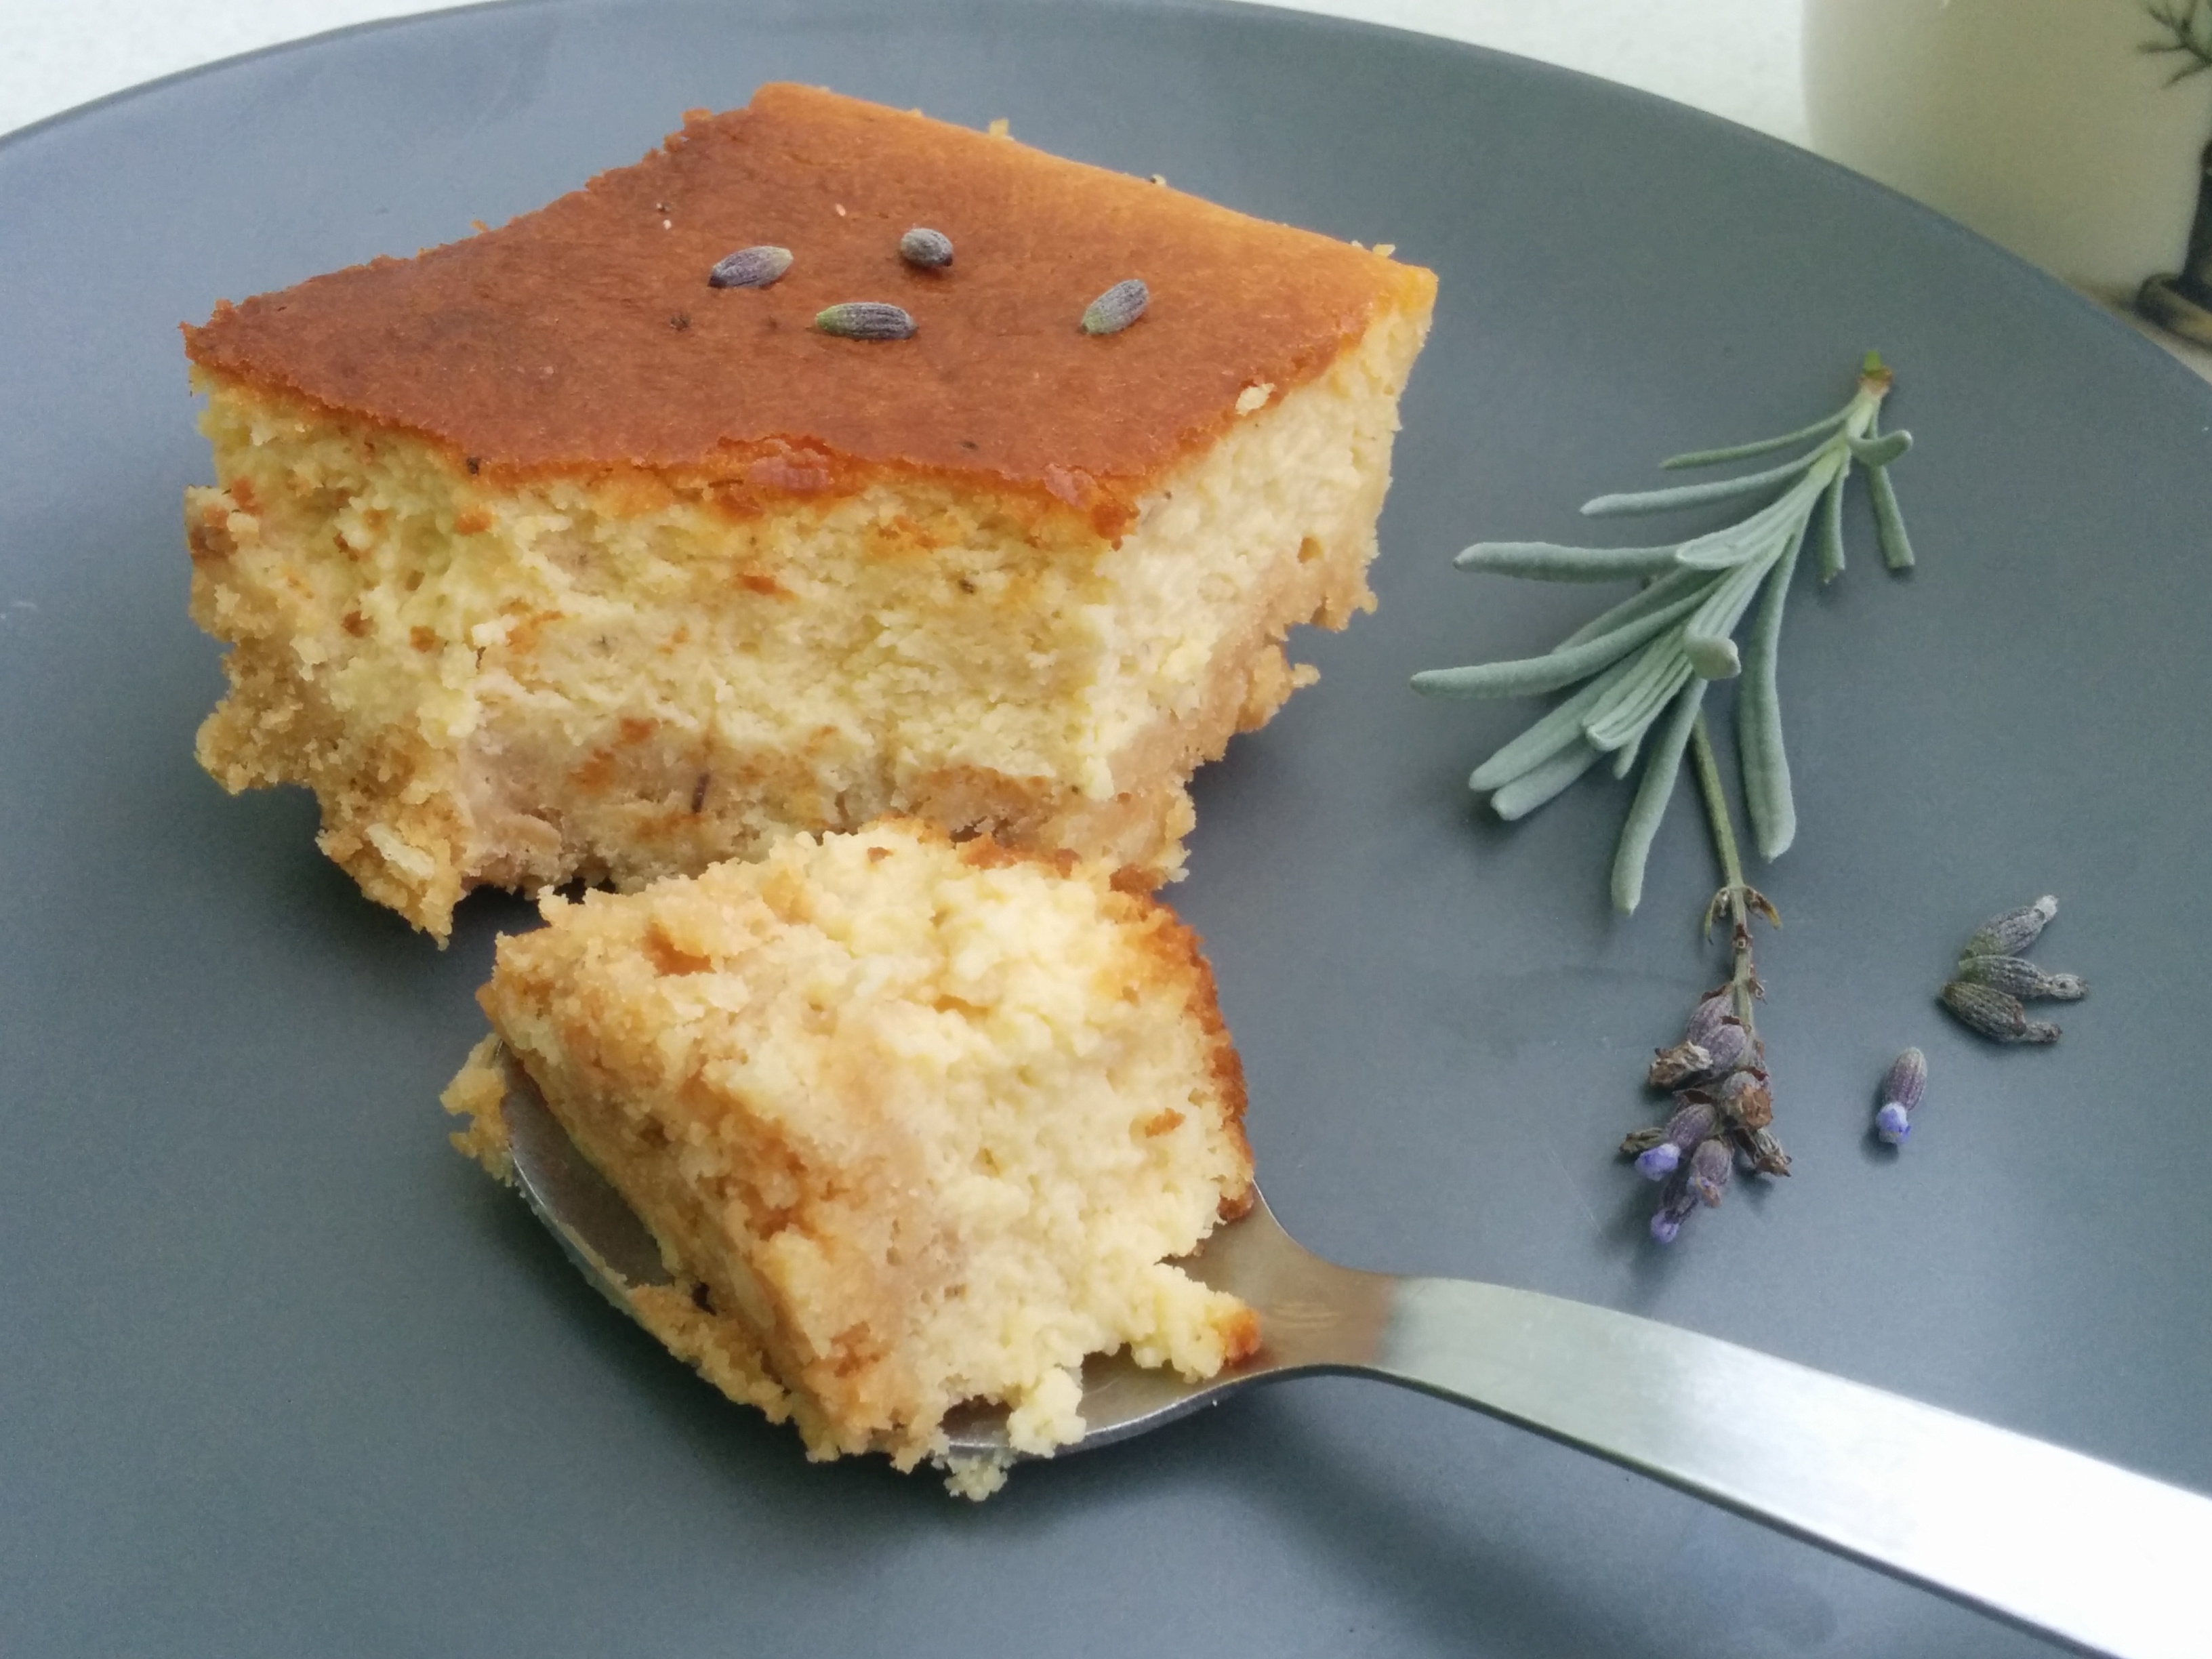 Recipe: Baked Earl Grey Cheesecake with Lavender